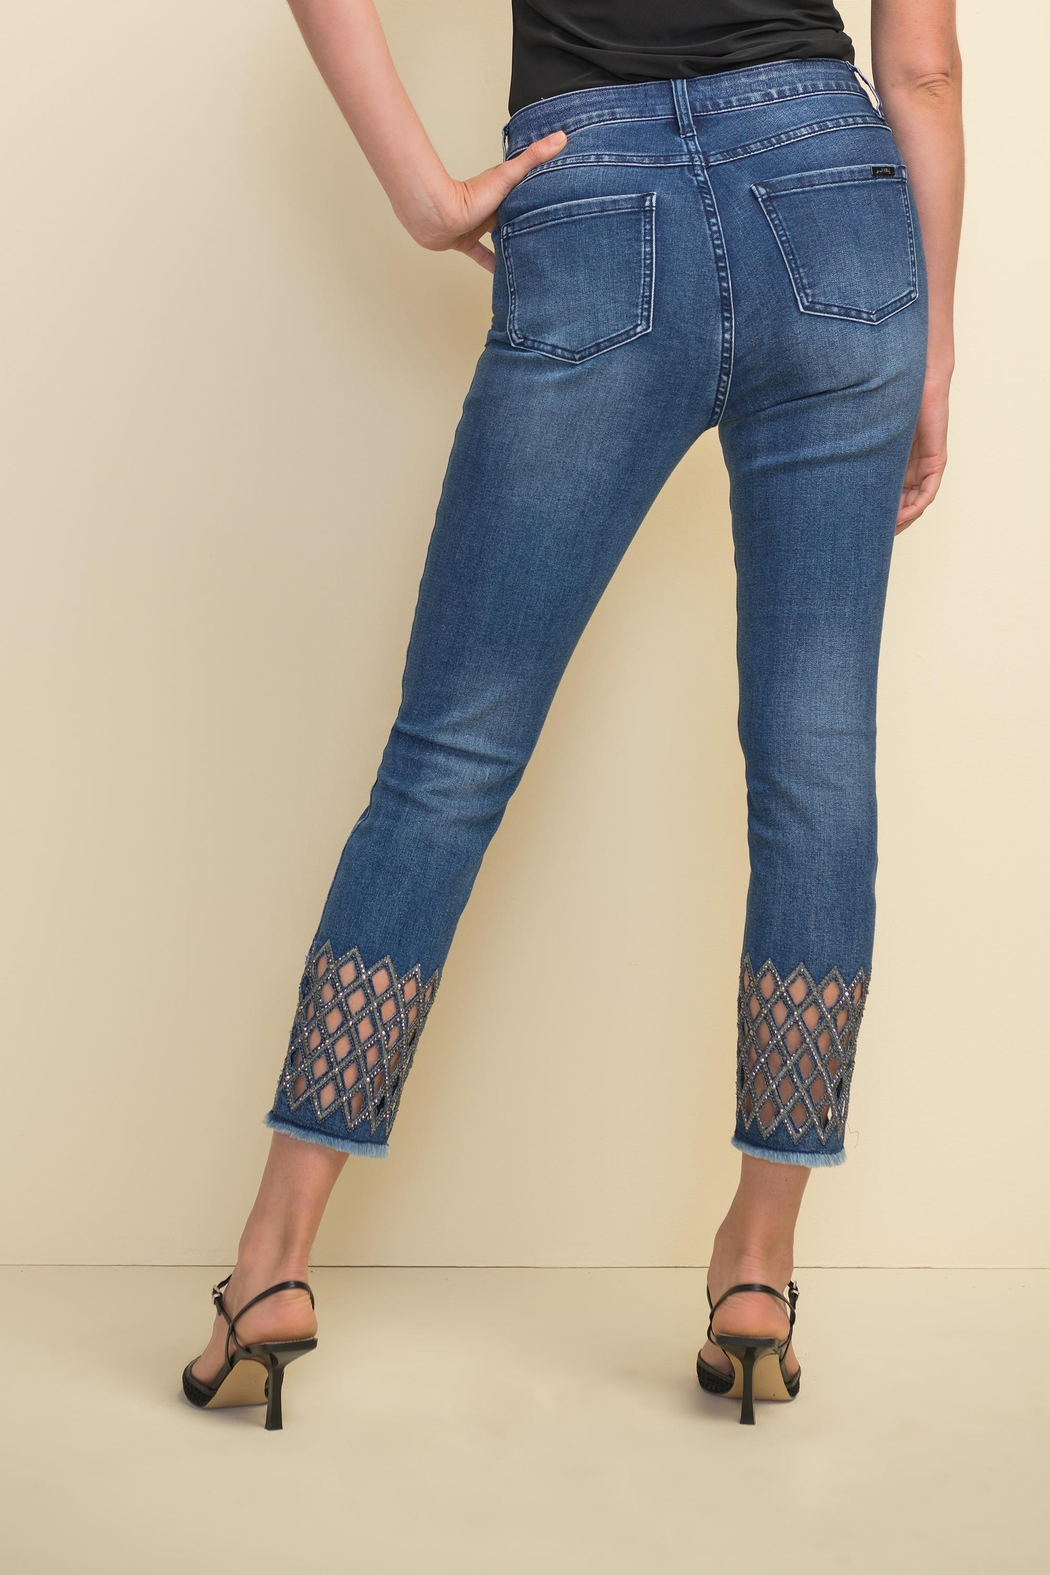 Joseph Ribkoff Diamond-Cut Detail Denim Pant - Side Cropped Image